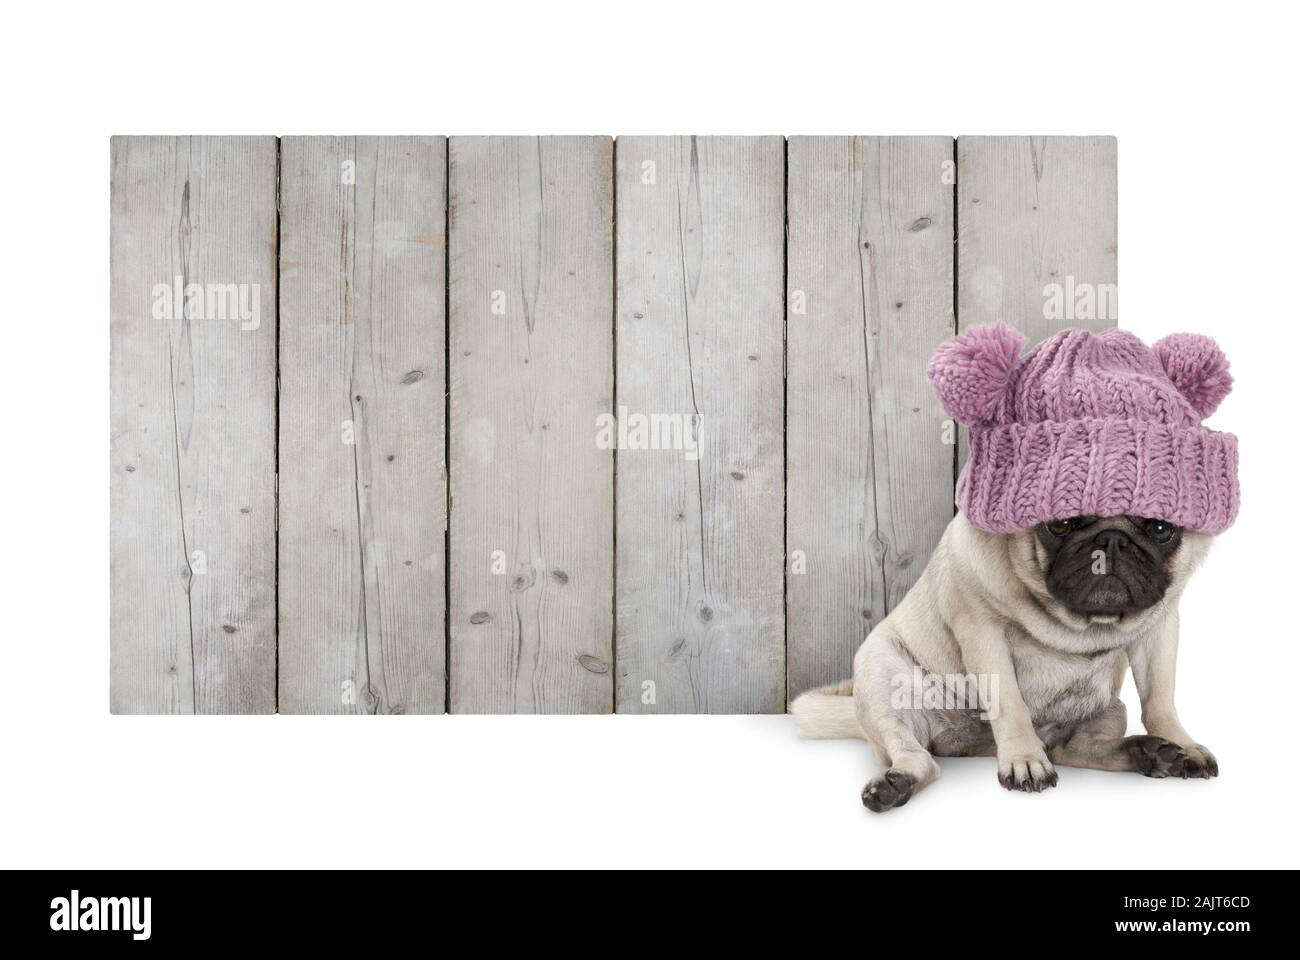 cute pug puppy dog with pink knitted winter hat, sitting in front of blank wooden fence promotional board sign of barn wood, isolated on white backgro Stock Photo